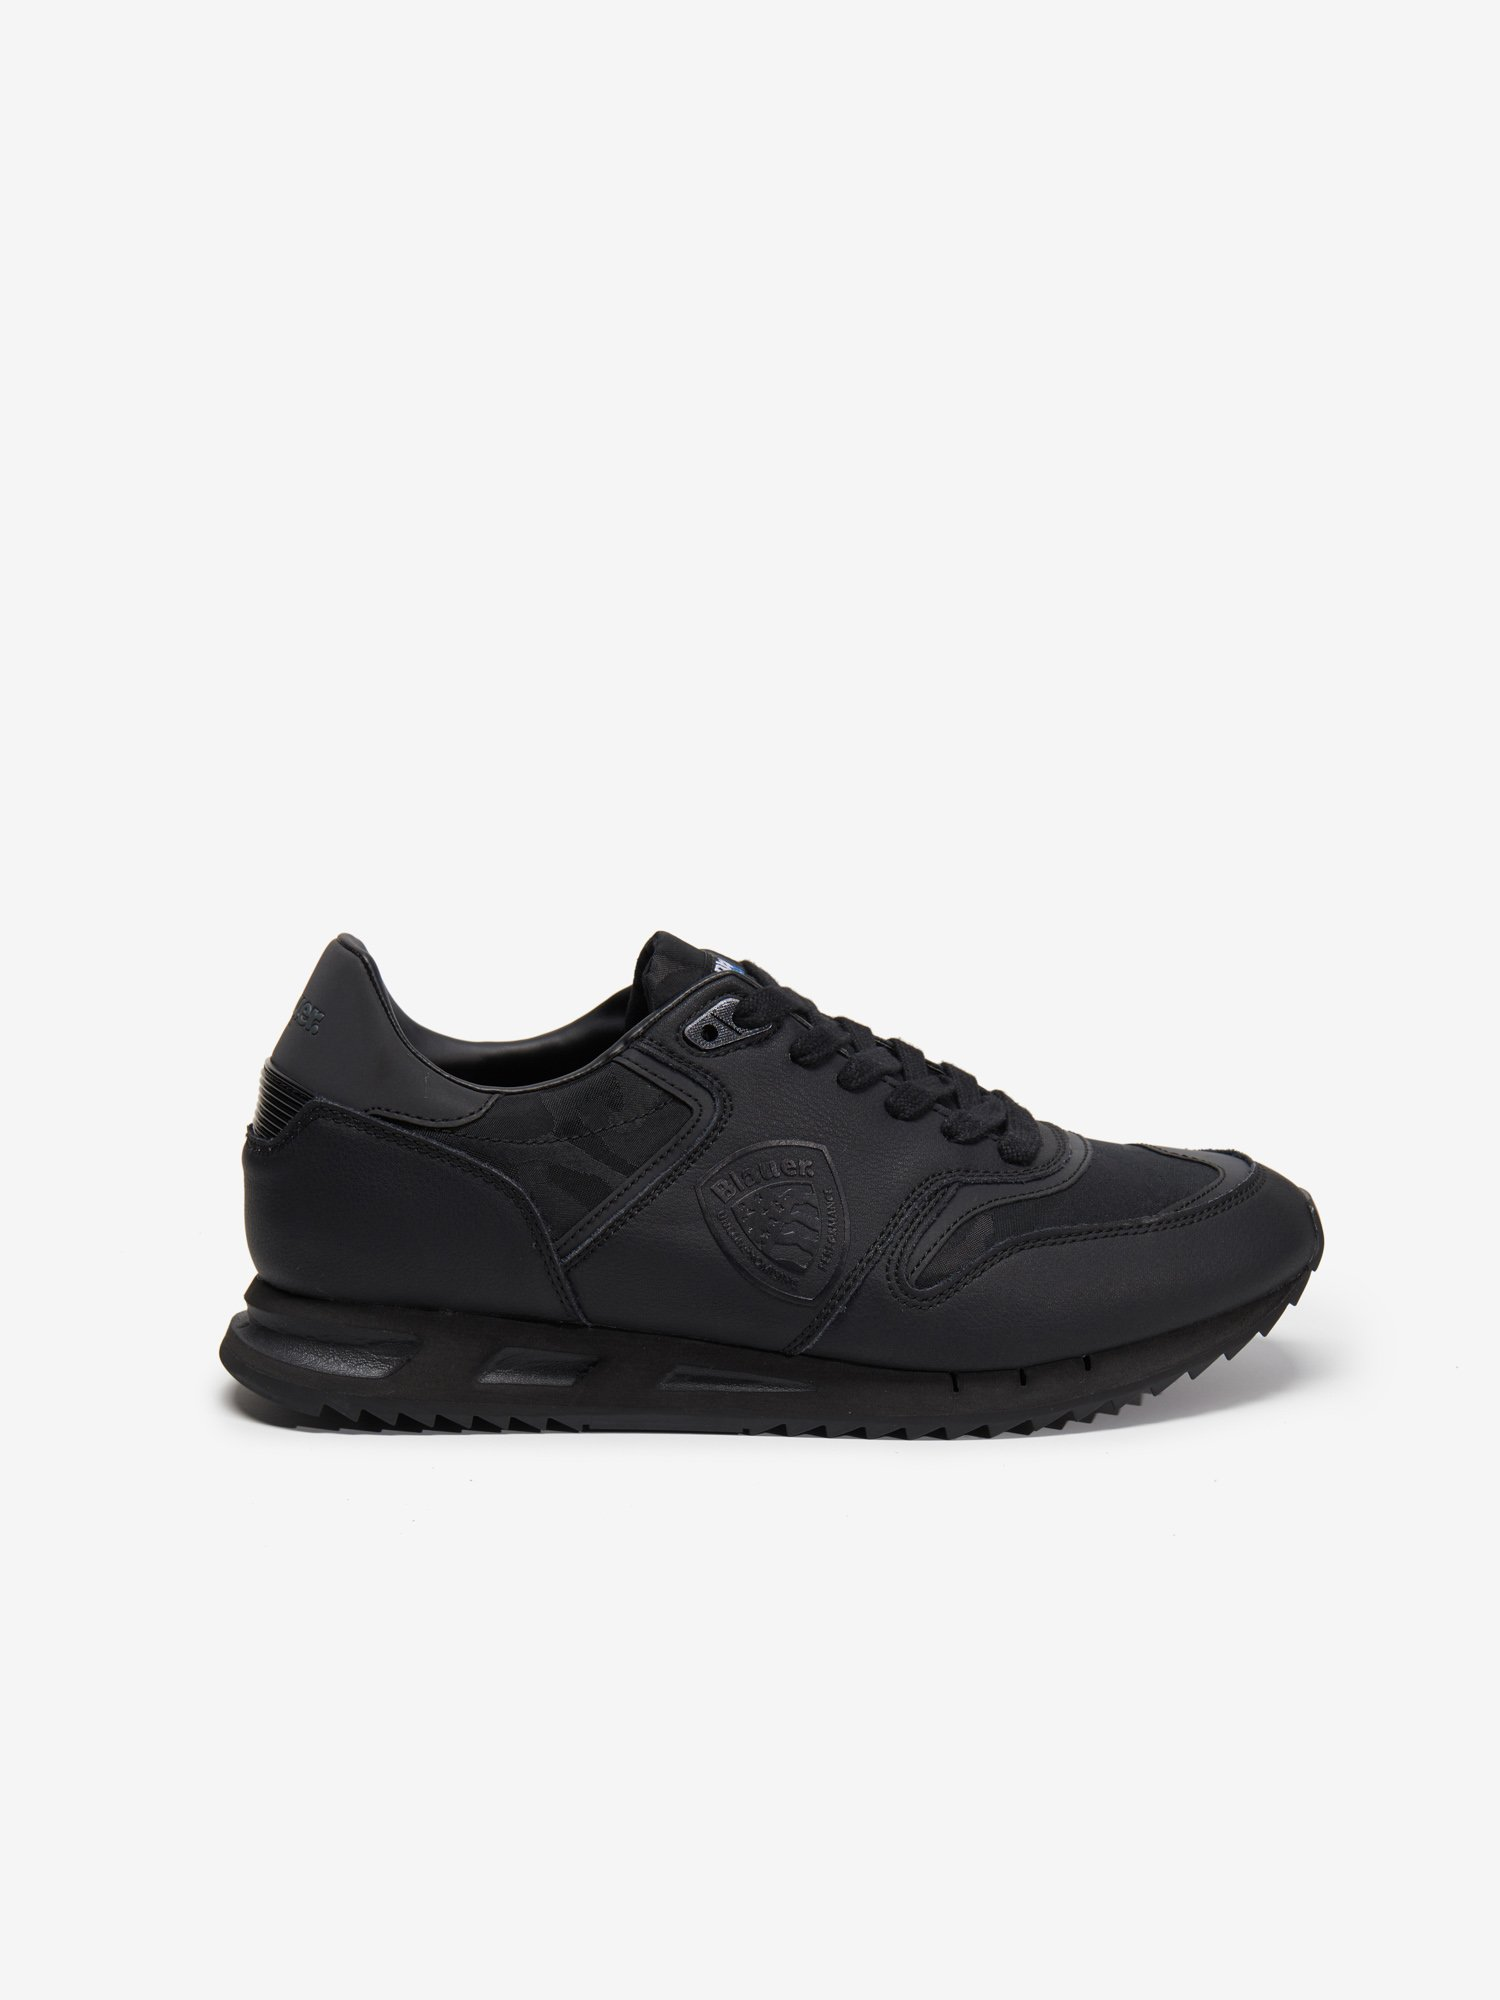 BLACK MEMPHIS LEATHER NYLON RUNNING - Blauer